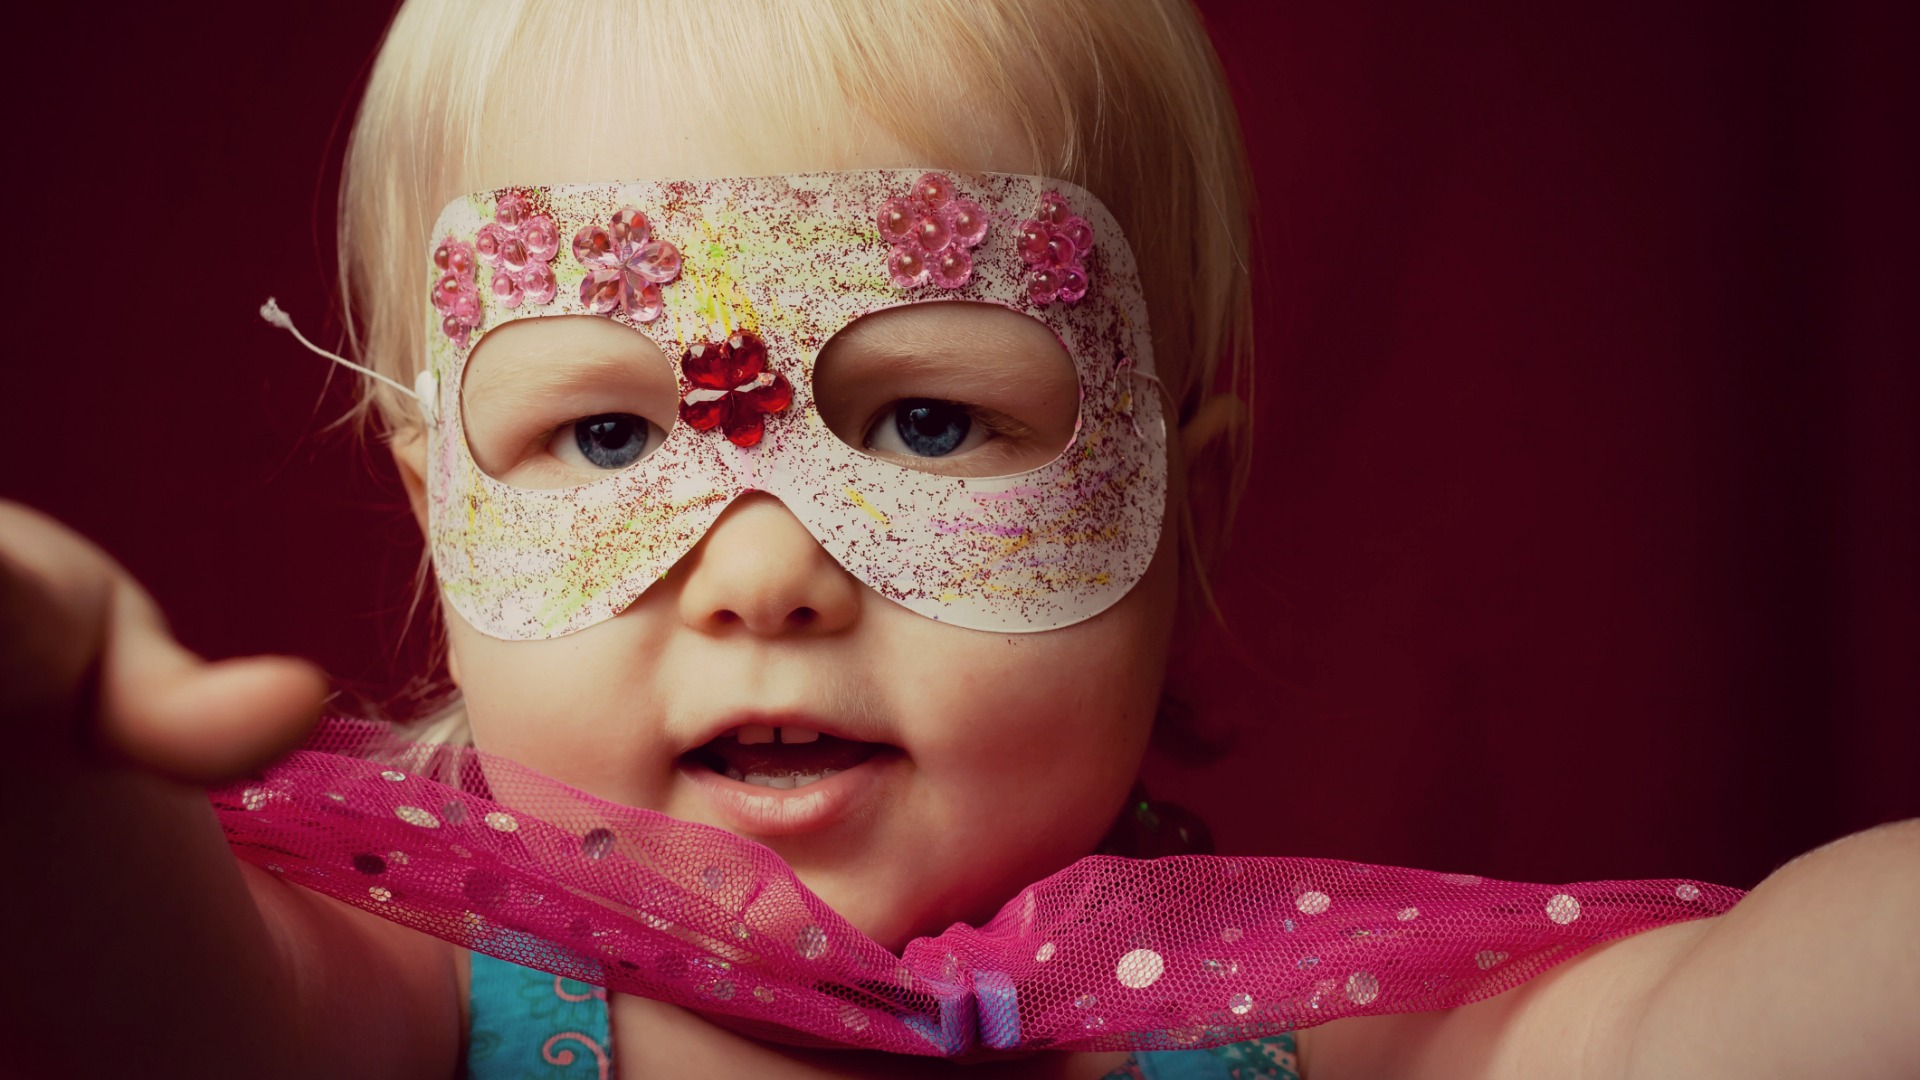 52 Baby Girl Names That Mean 'Warrior' for Your Fierce